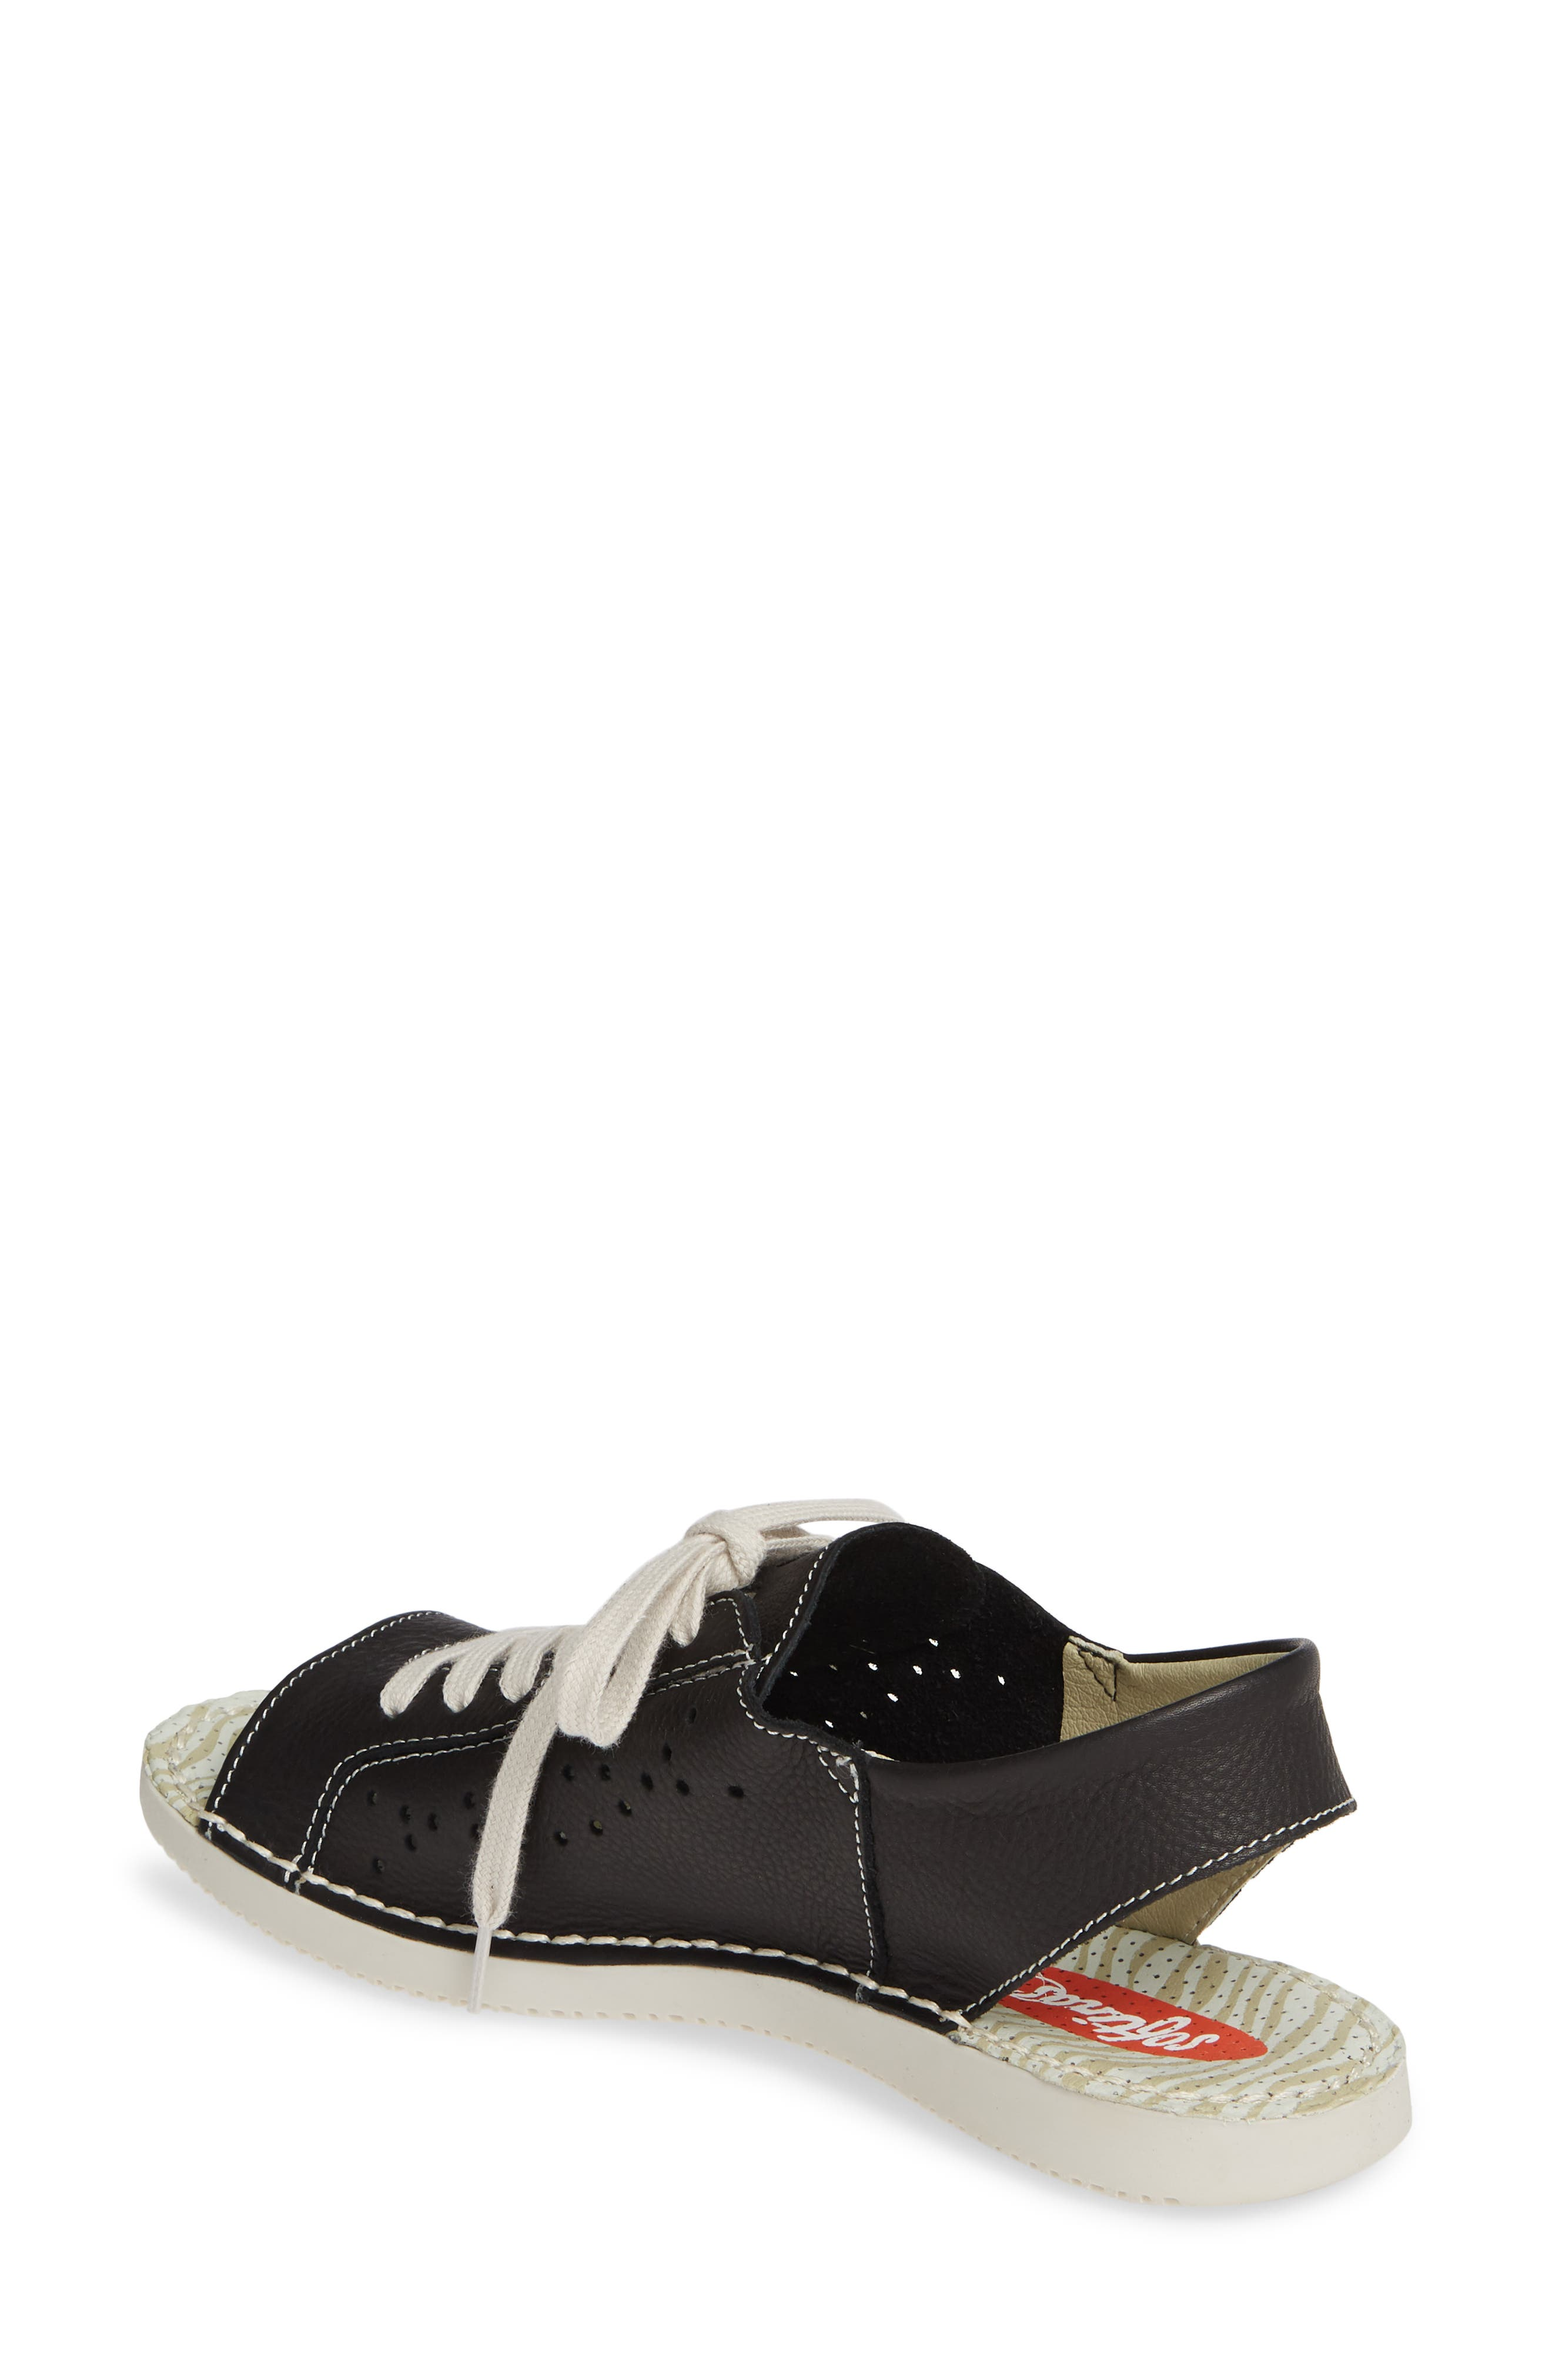 SOFTINOS BY FLY LONDON, Thi Slingback Sneaker Sandal, Alternate thumbnail 2, color, BLACK LEATHER